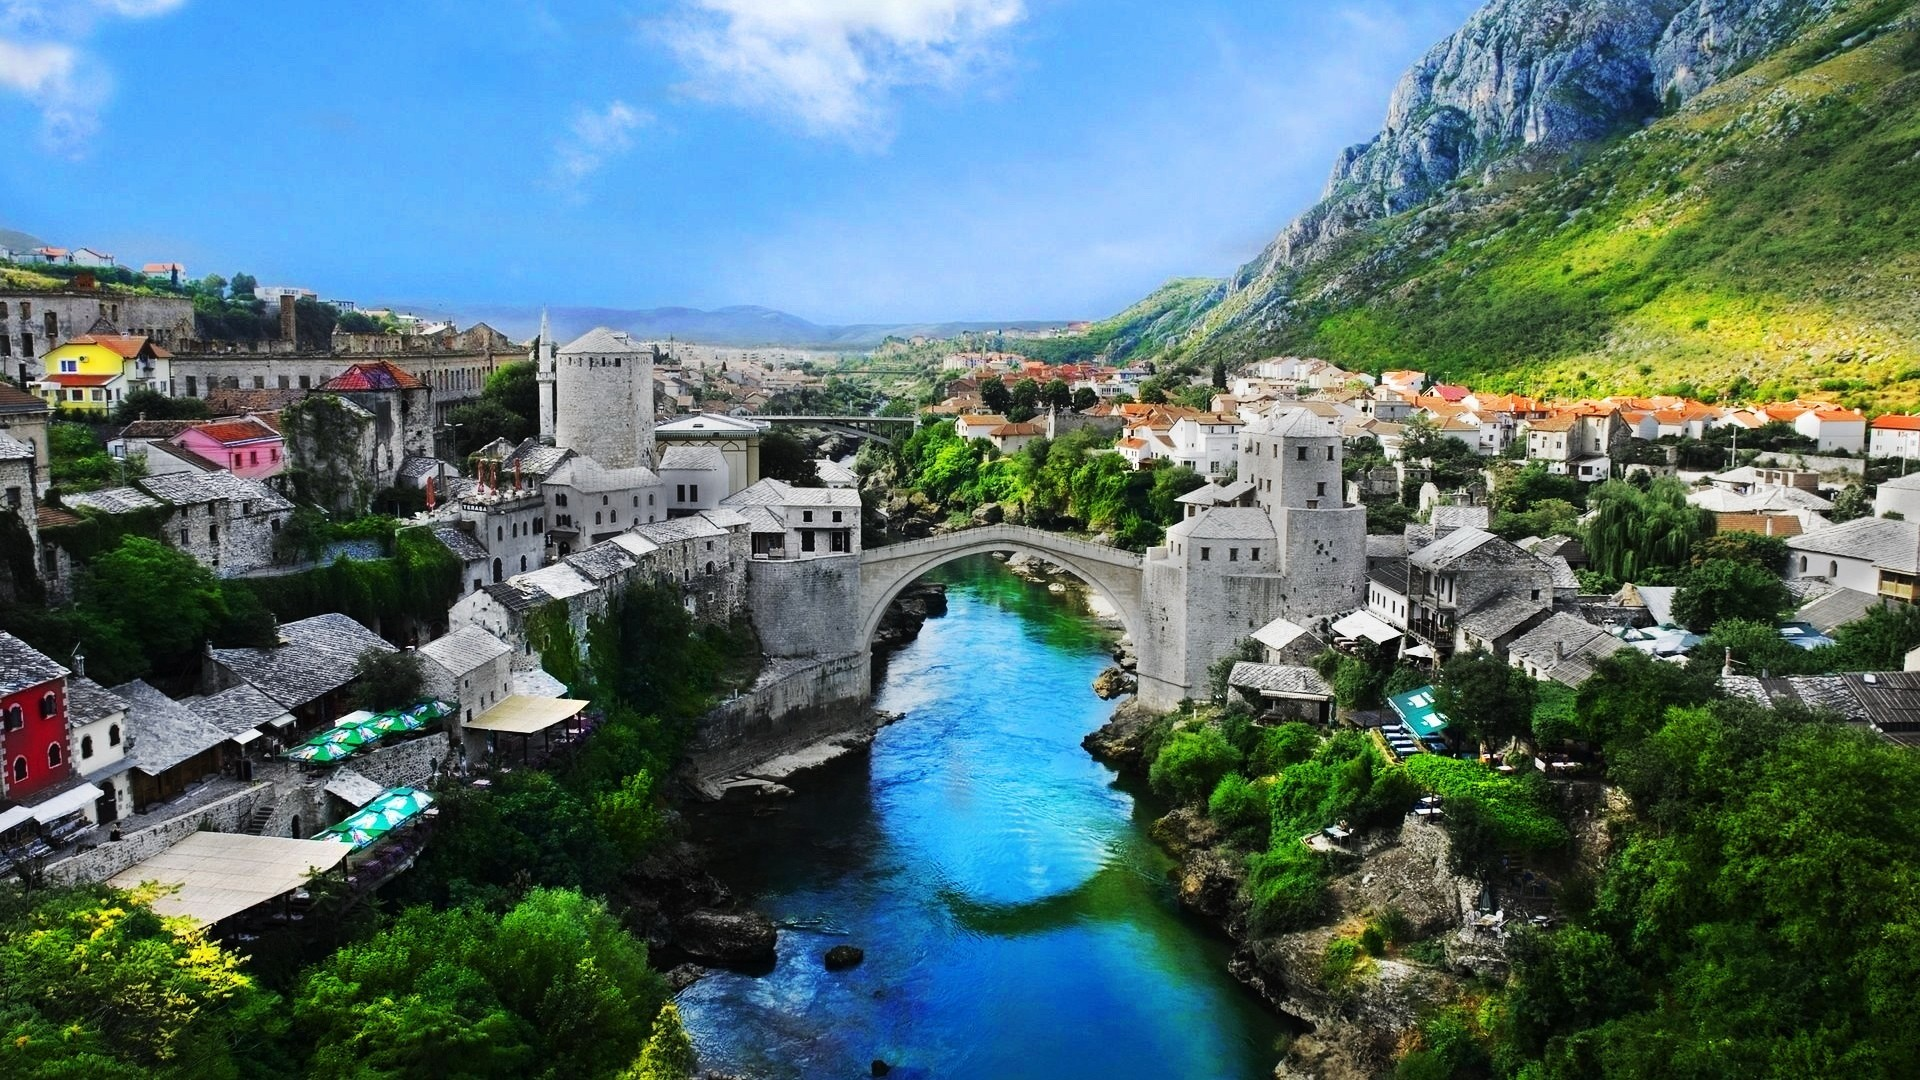 1920x1080  Wallpaper bosnia and herzegovina, mostar old town, mostar, nature,  landscape